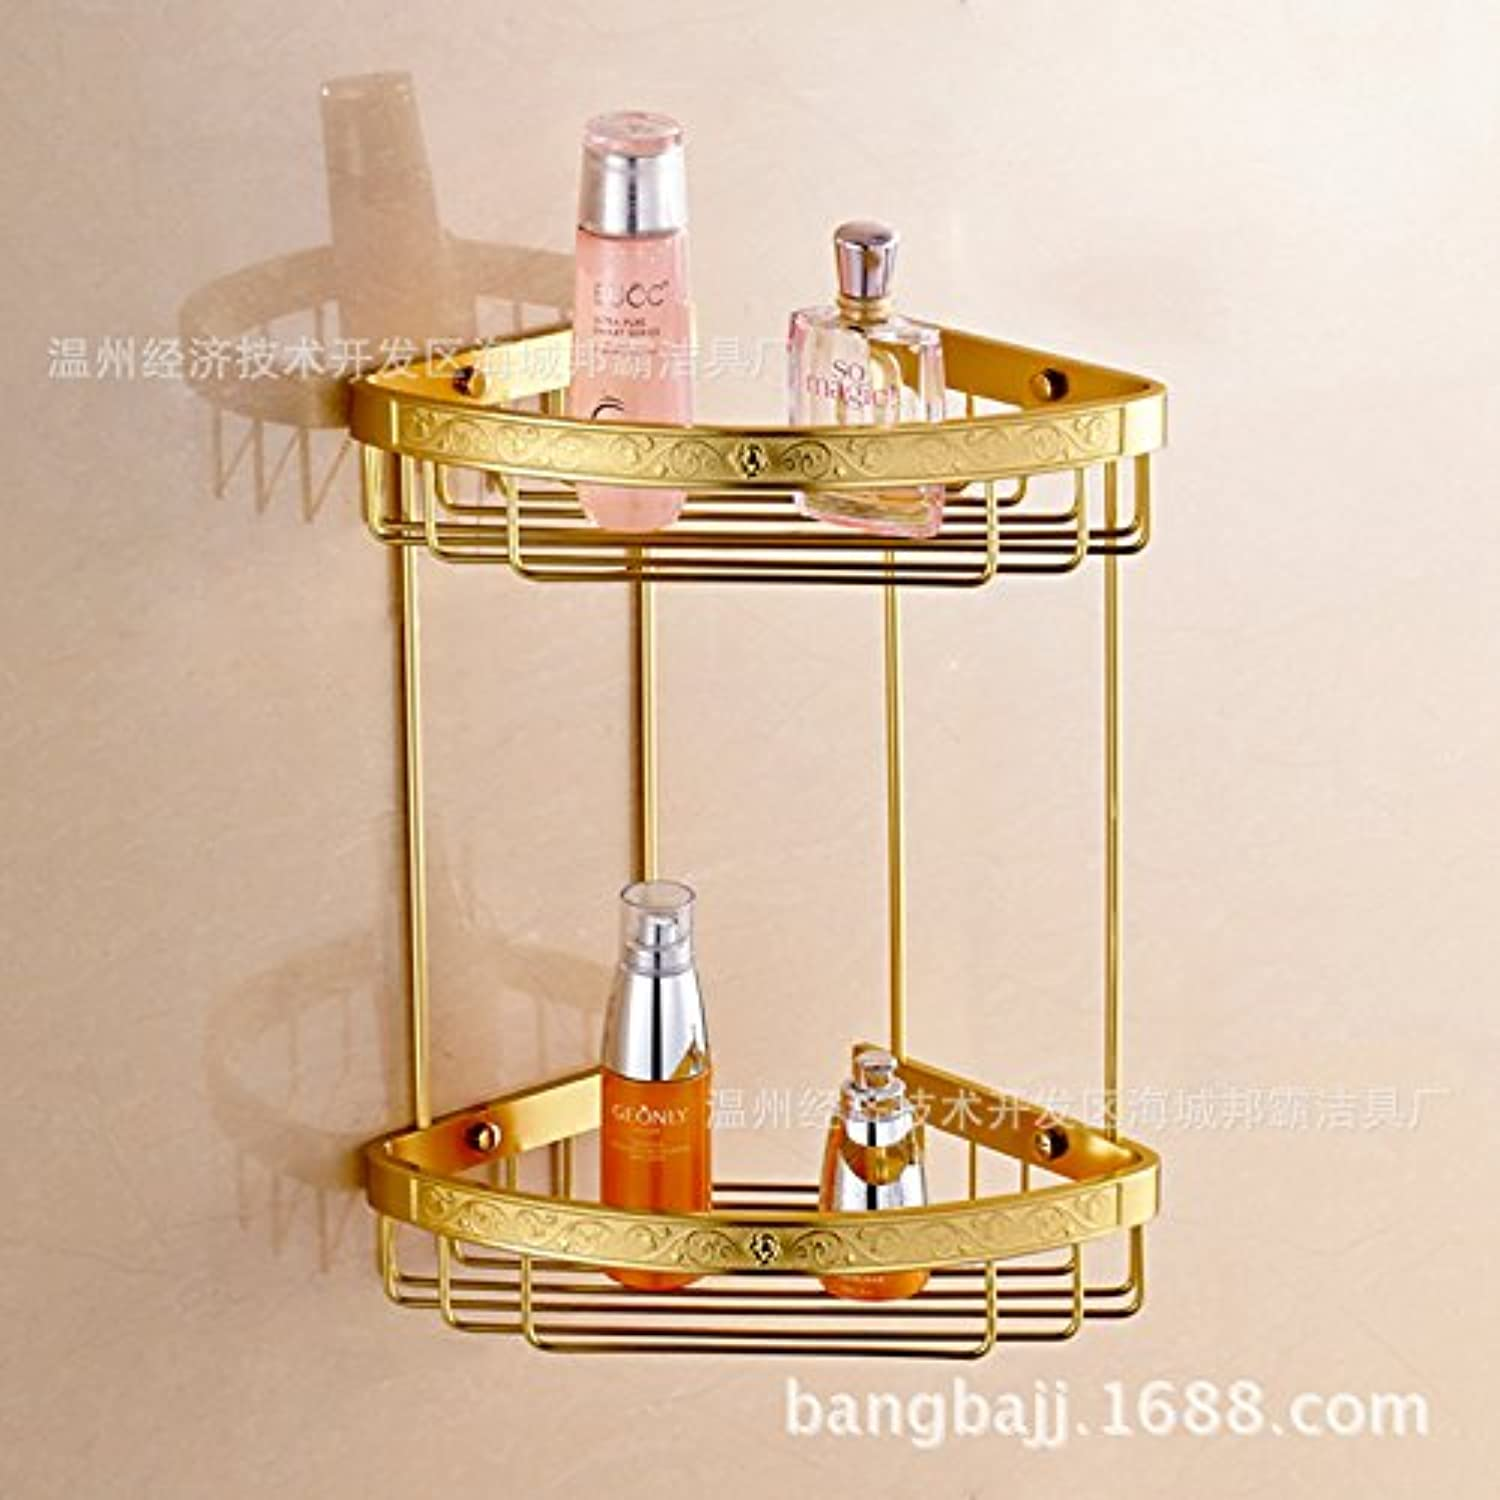 Bathroom Bathroom Shelf corner shelf Wall shelves space aluminium pendant carved double gold